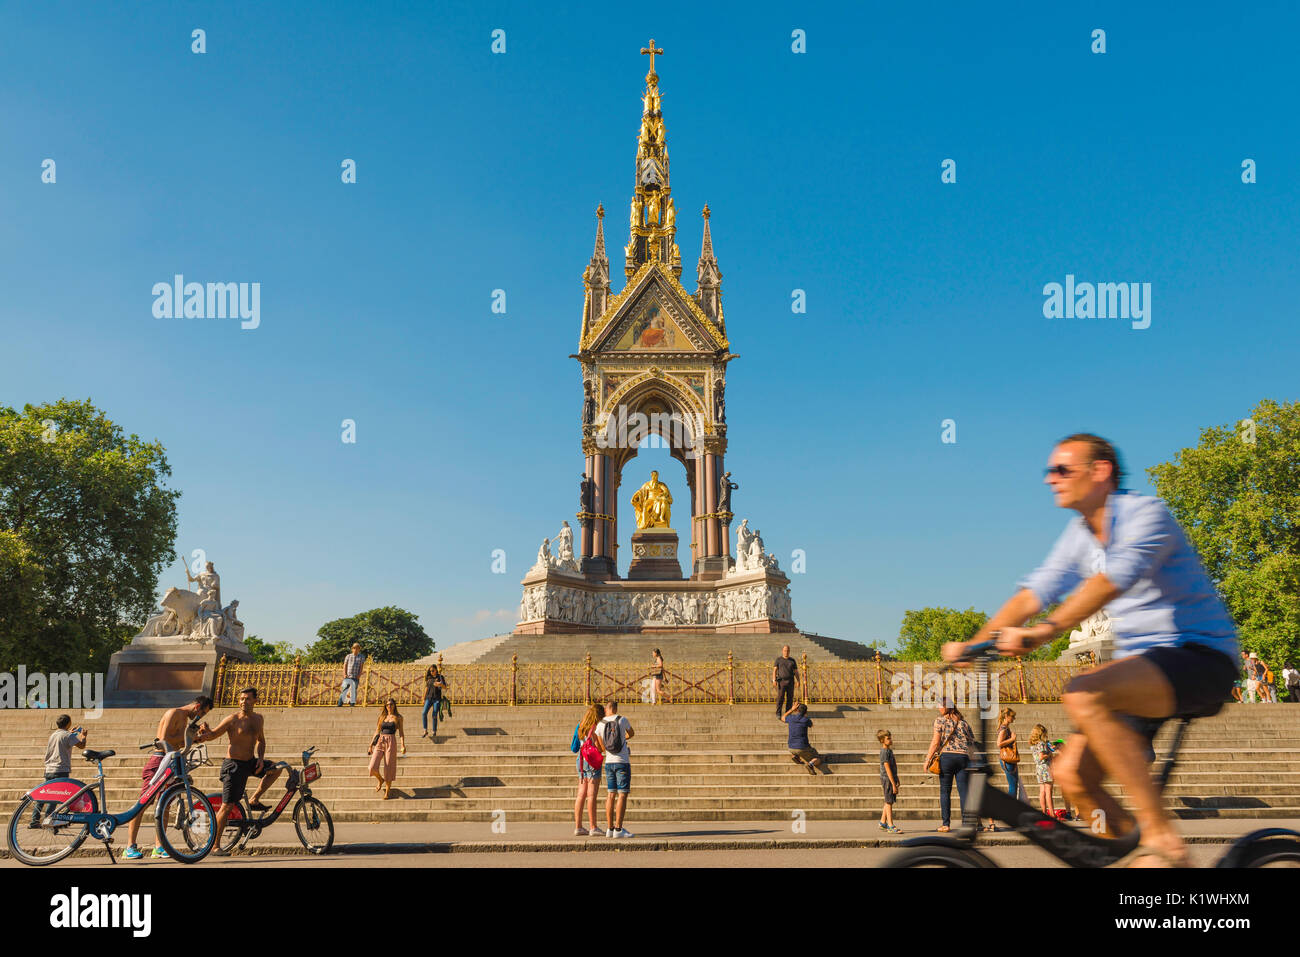 London summer cycling, on a summer afternoon tourists on bikes visit the Albert Memorial at the entrance to Kensington Gardens,London,UK - Stock Image